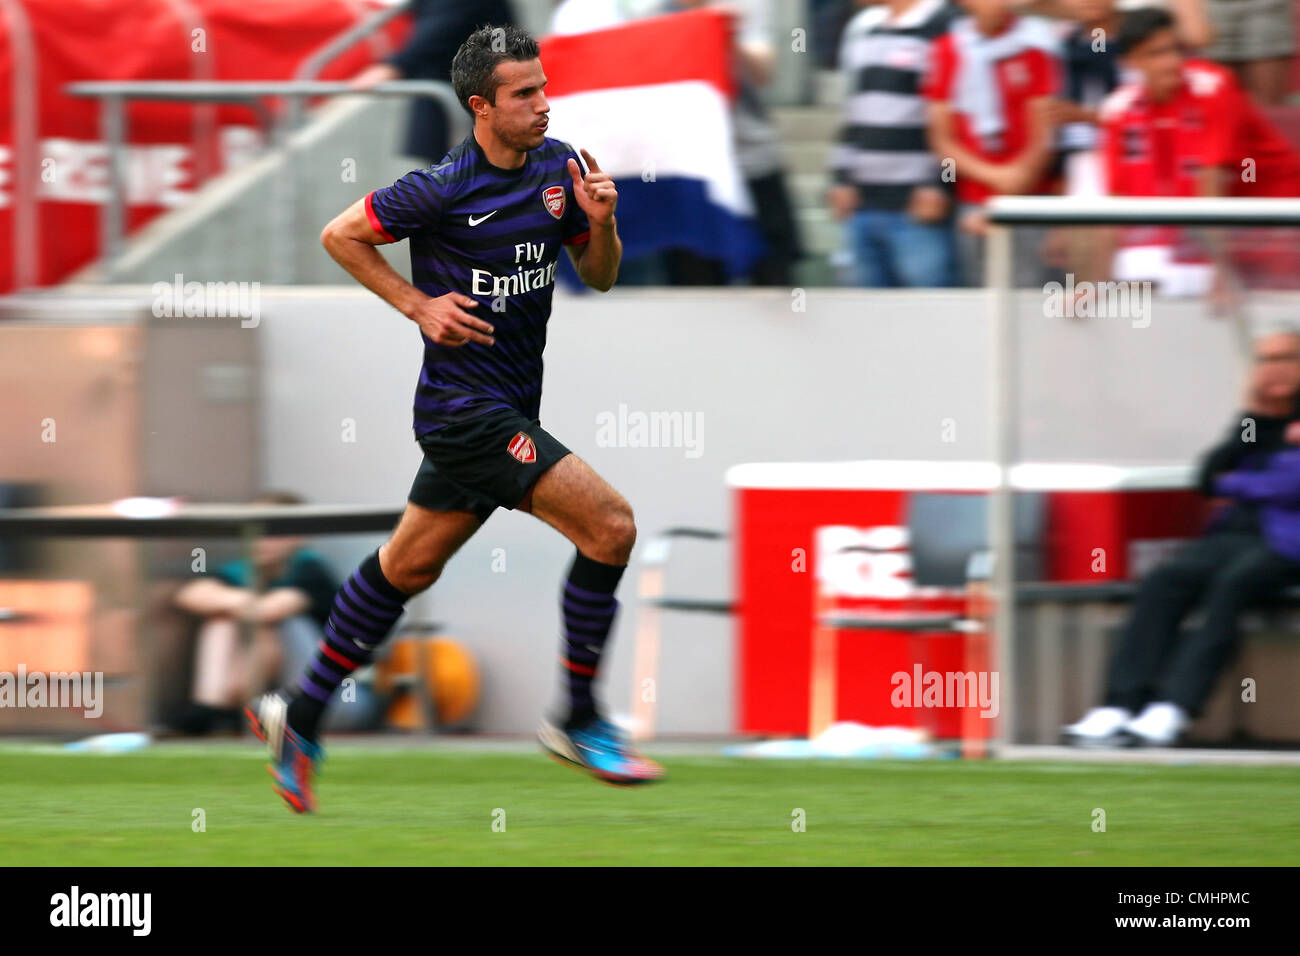 12.08.2012. Cologne, Germany.  Arsenal's Robin van Persie during the preseaon friendly match between FC Cologne - Stock Image